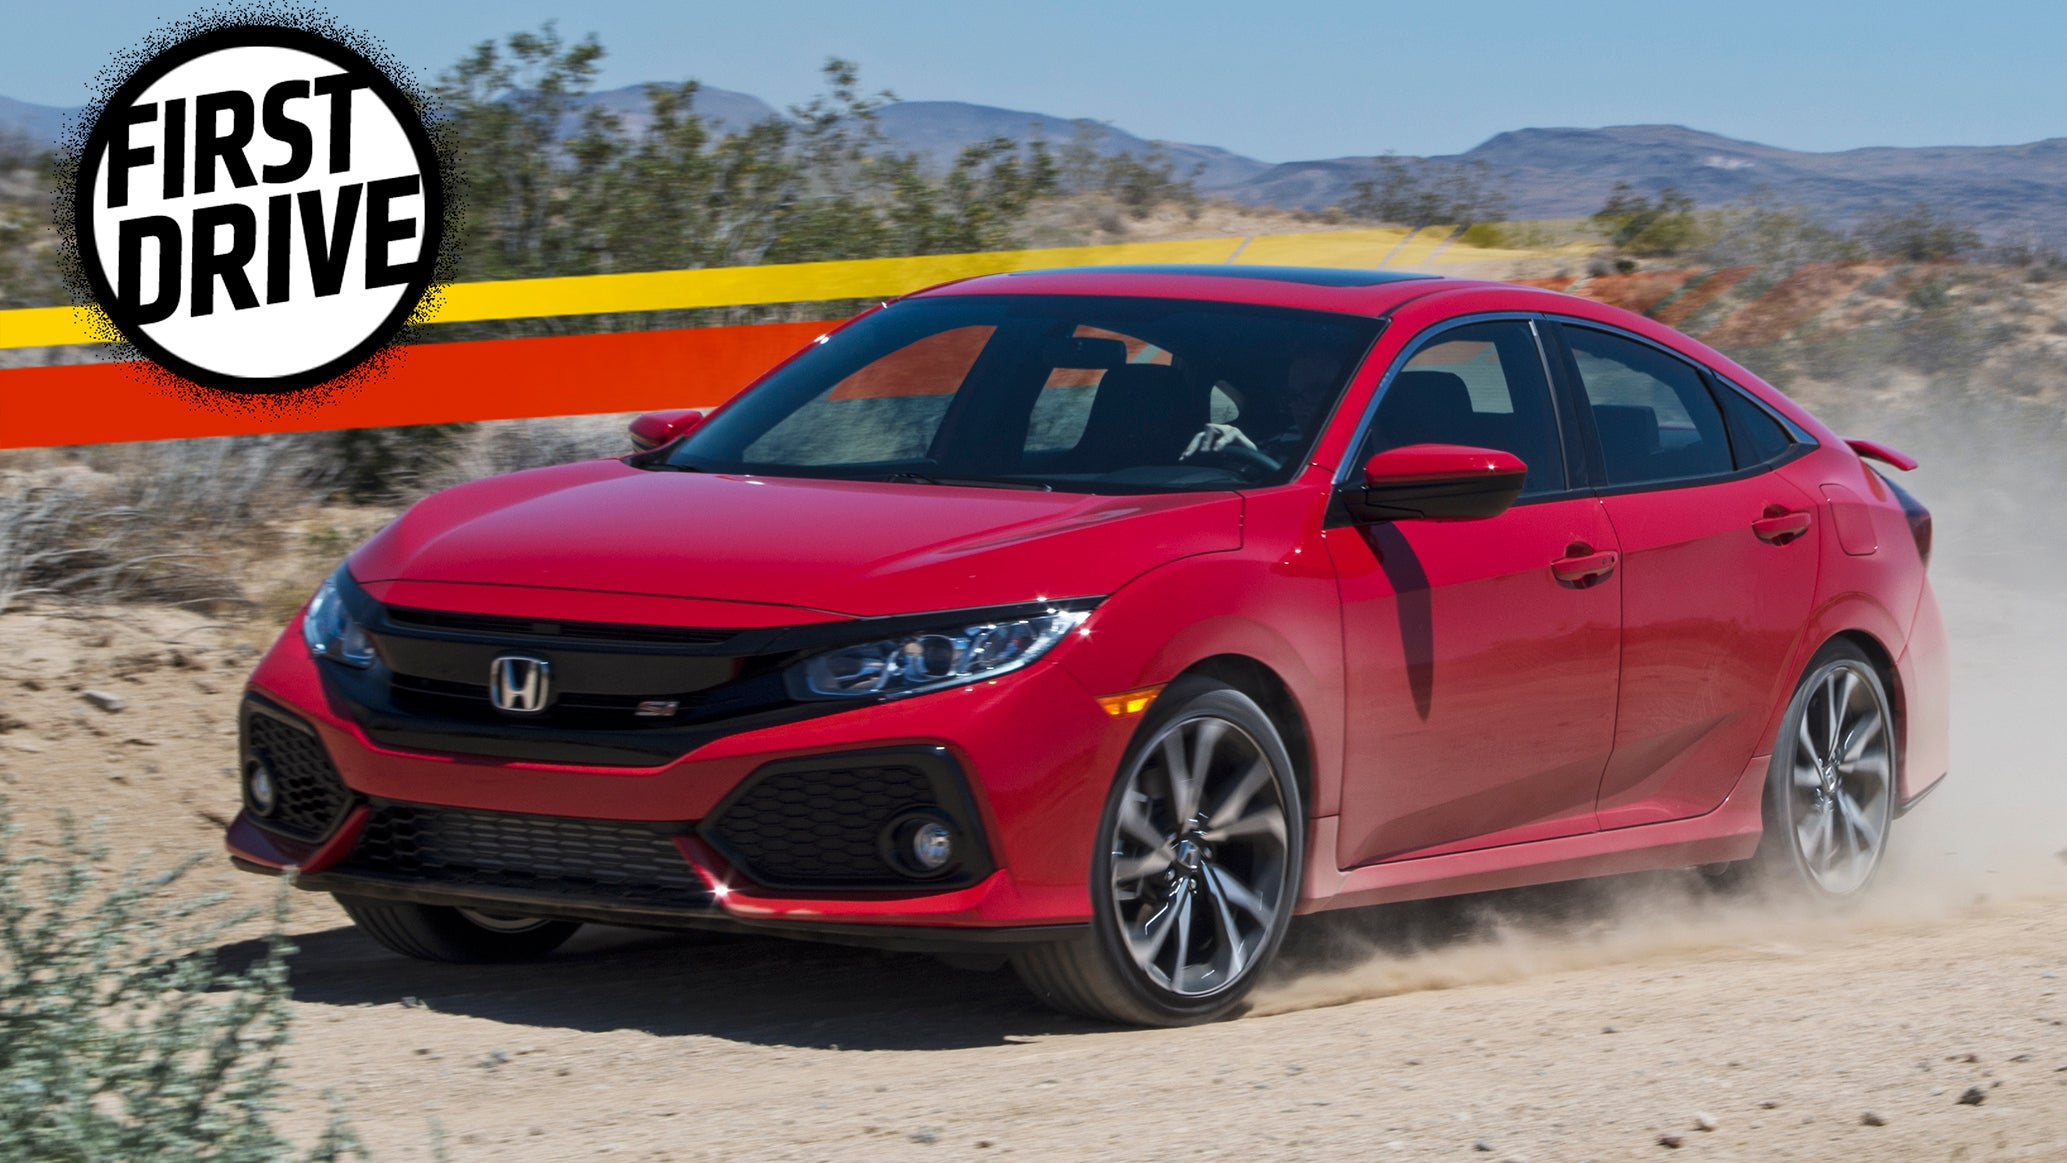 The 2017 Honda Civic Si Is The Kind Of Fun That Won't Ruin Your Life